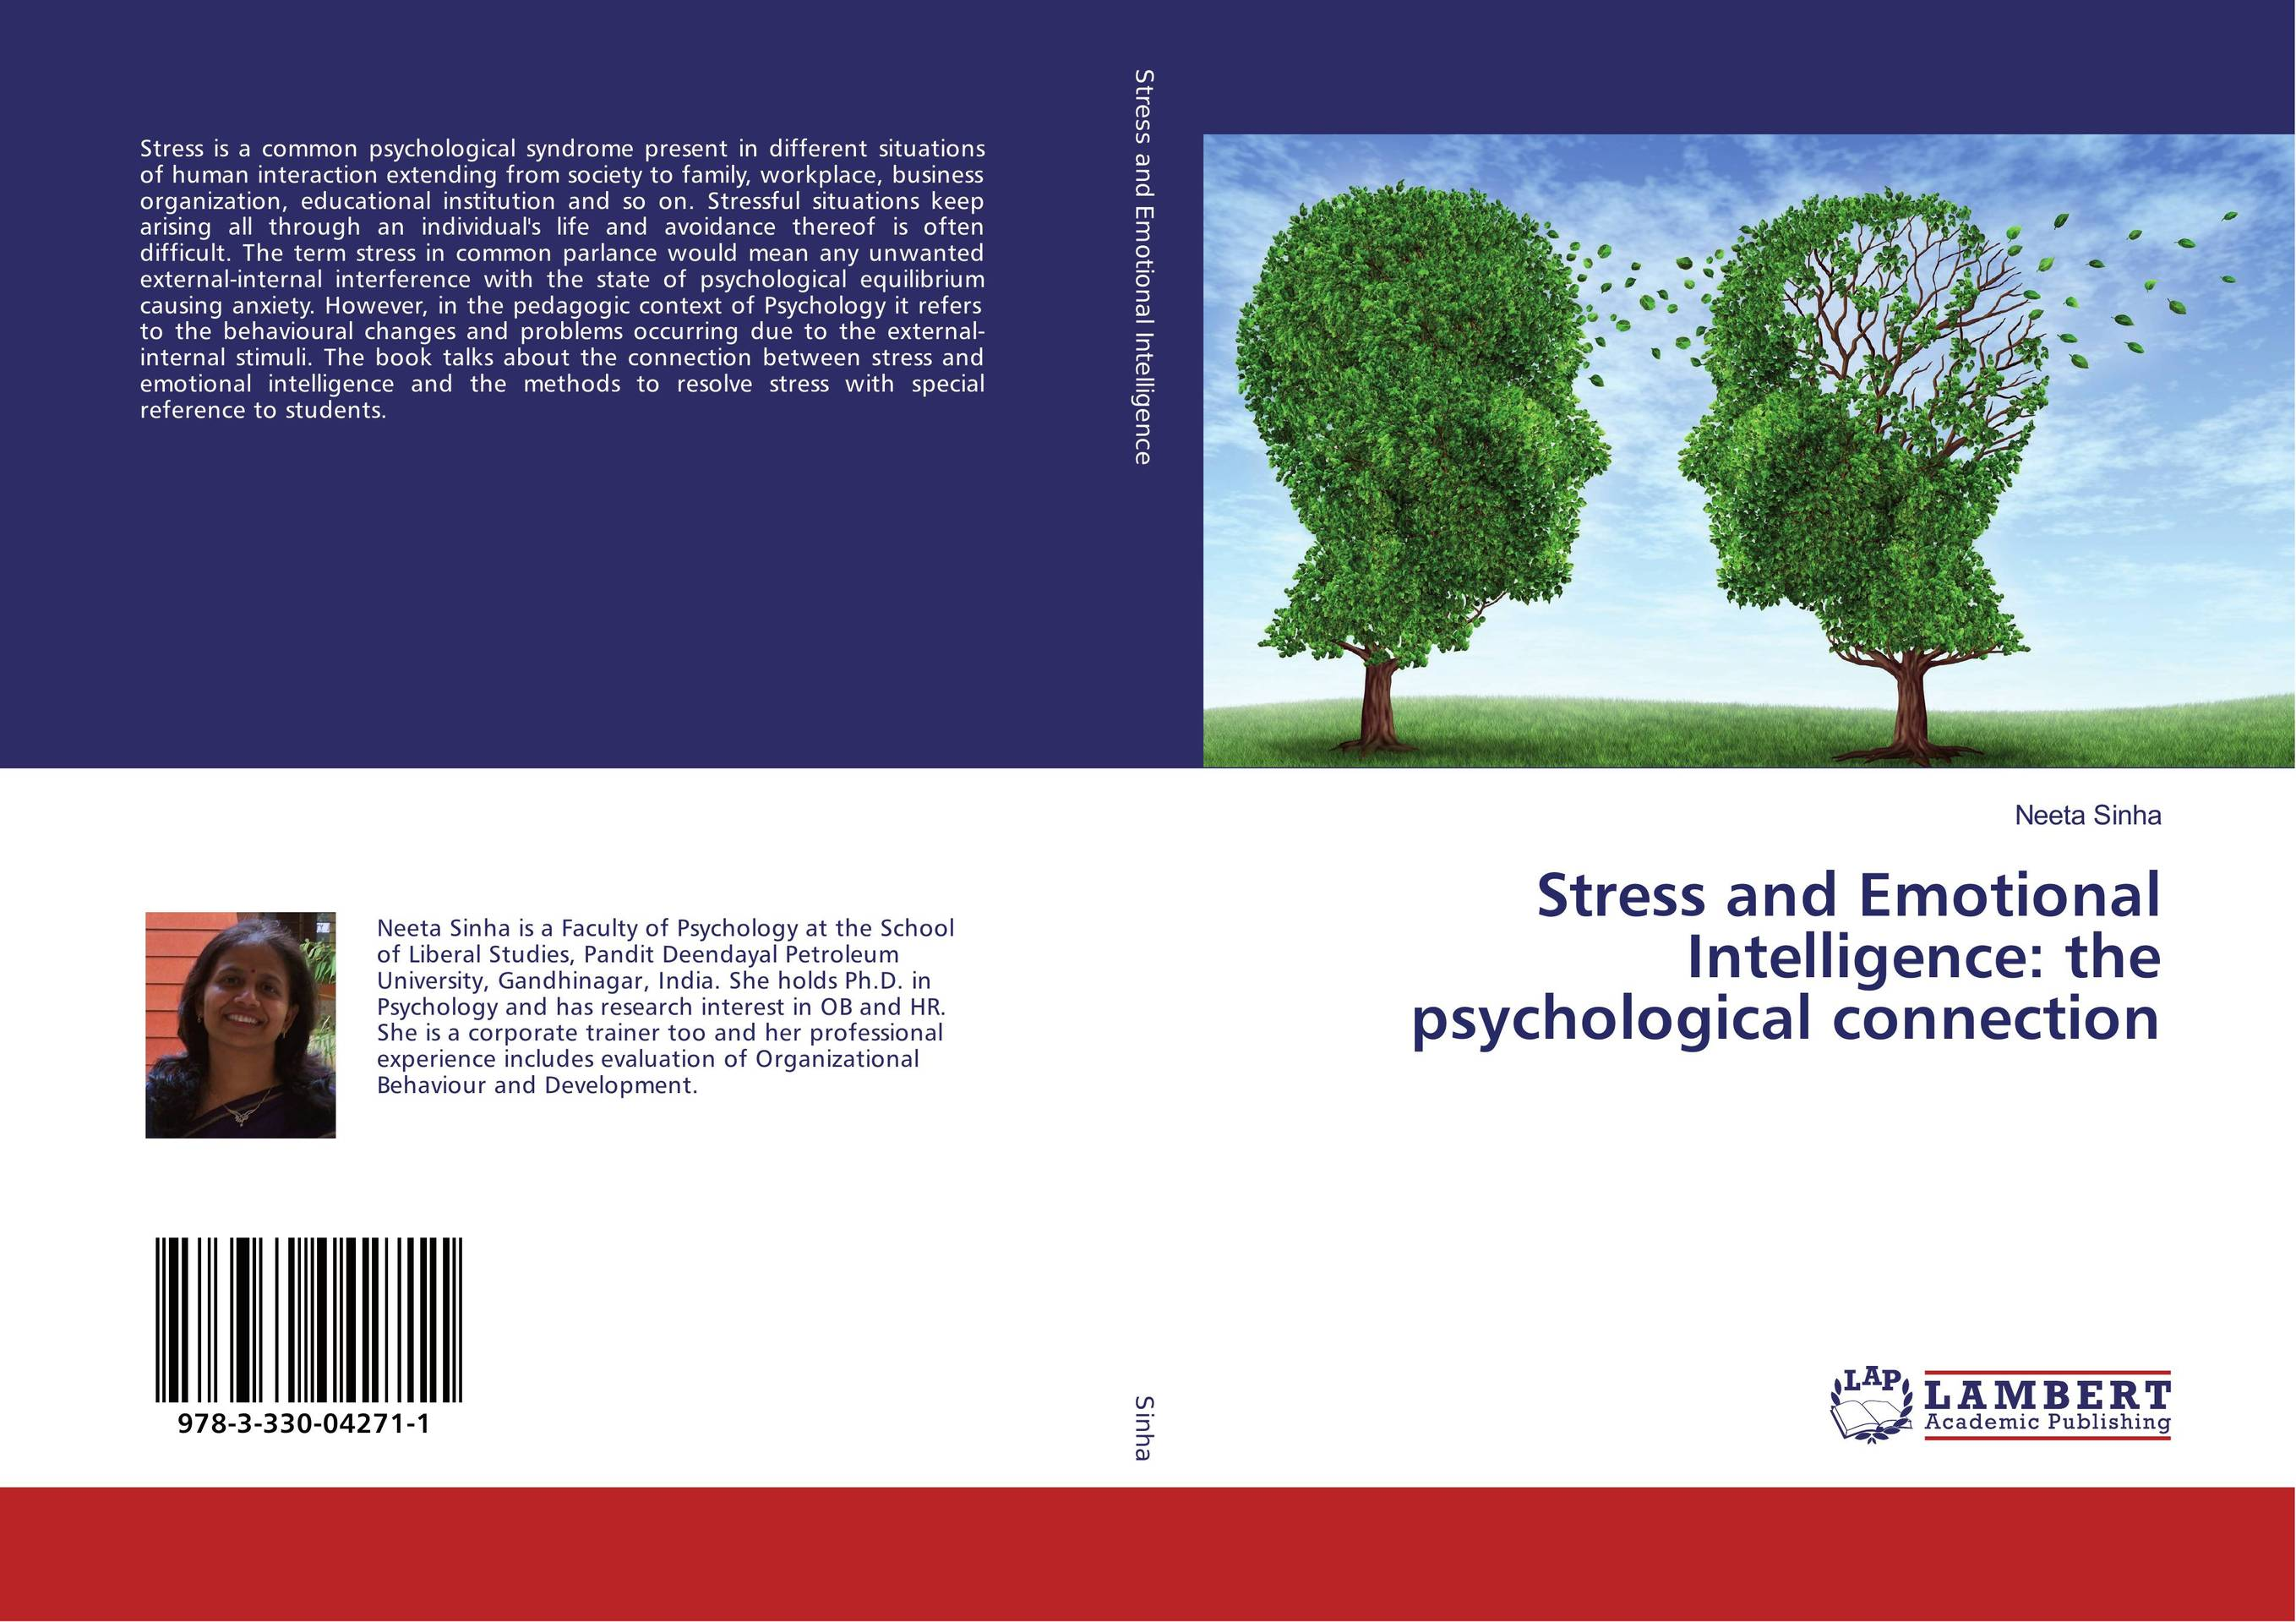 9783330042711 Stress and Emotional Intelligence the psychological connection